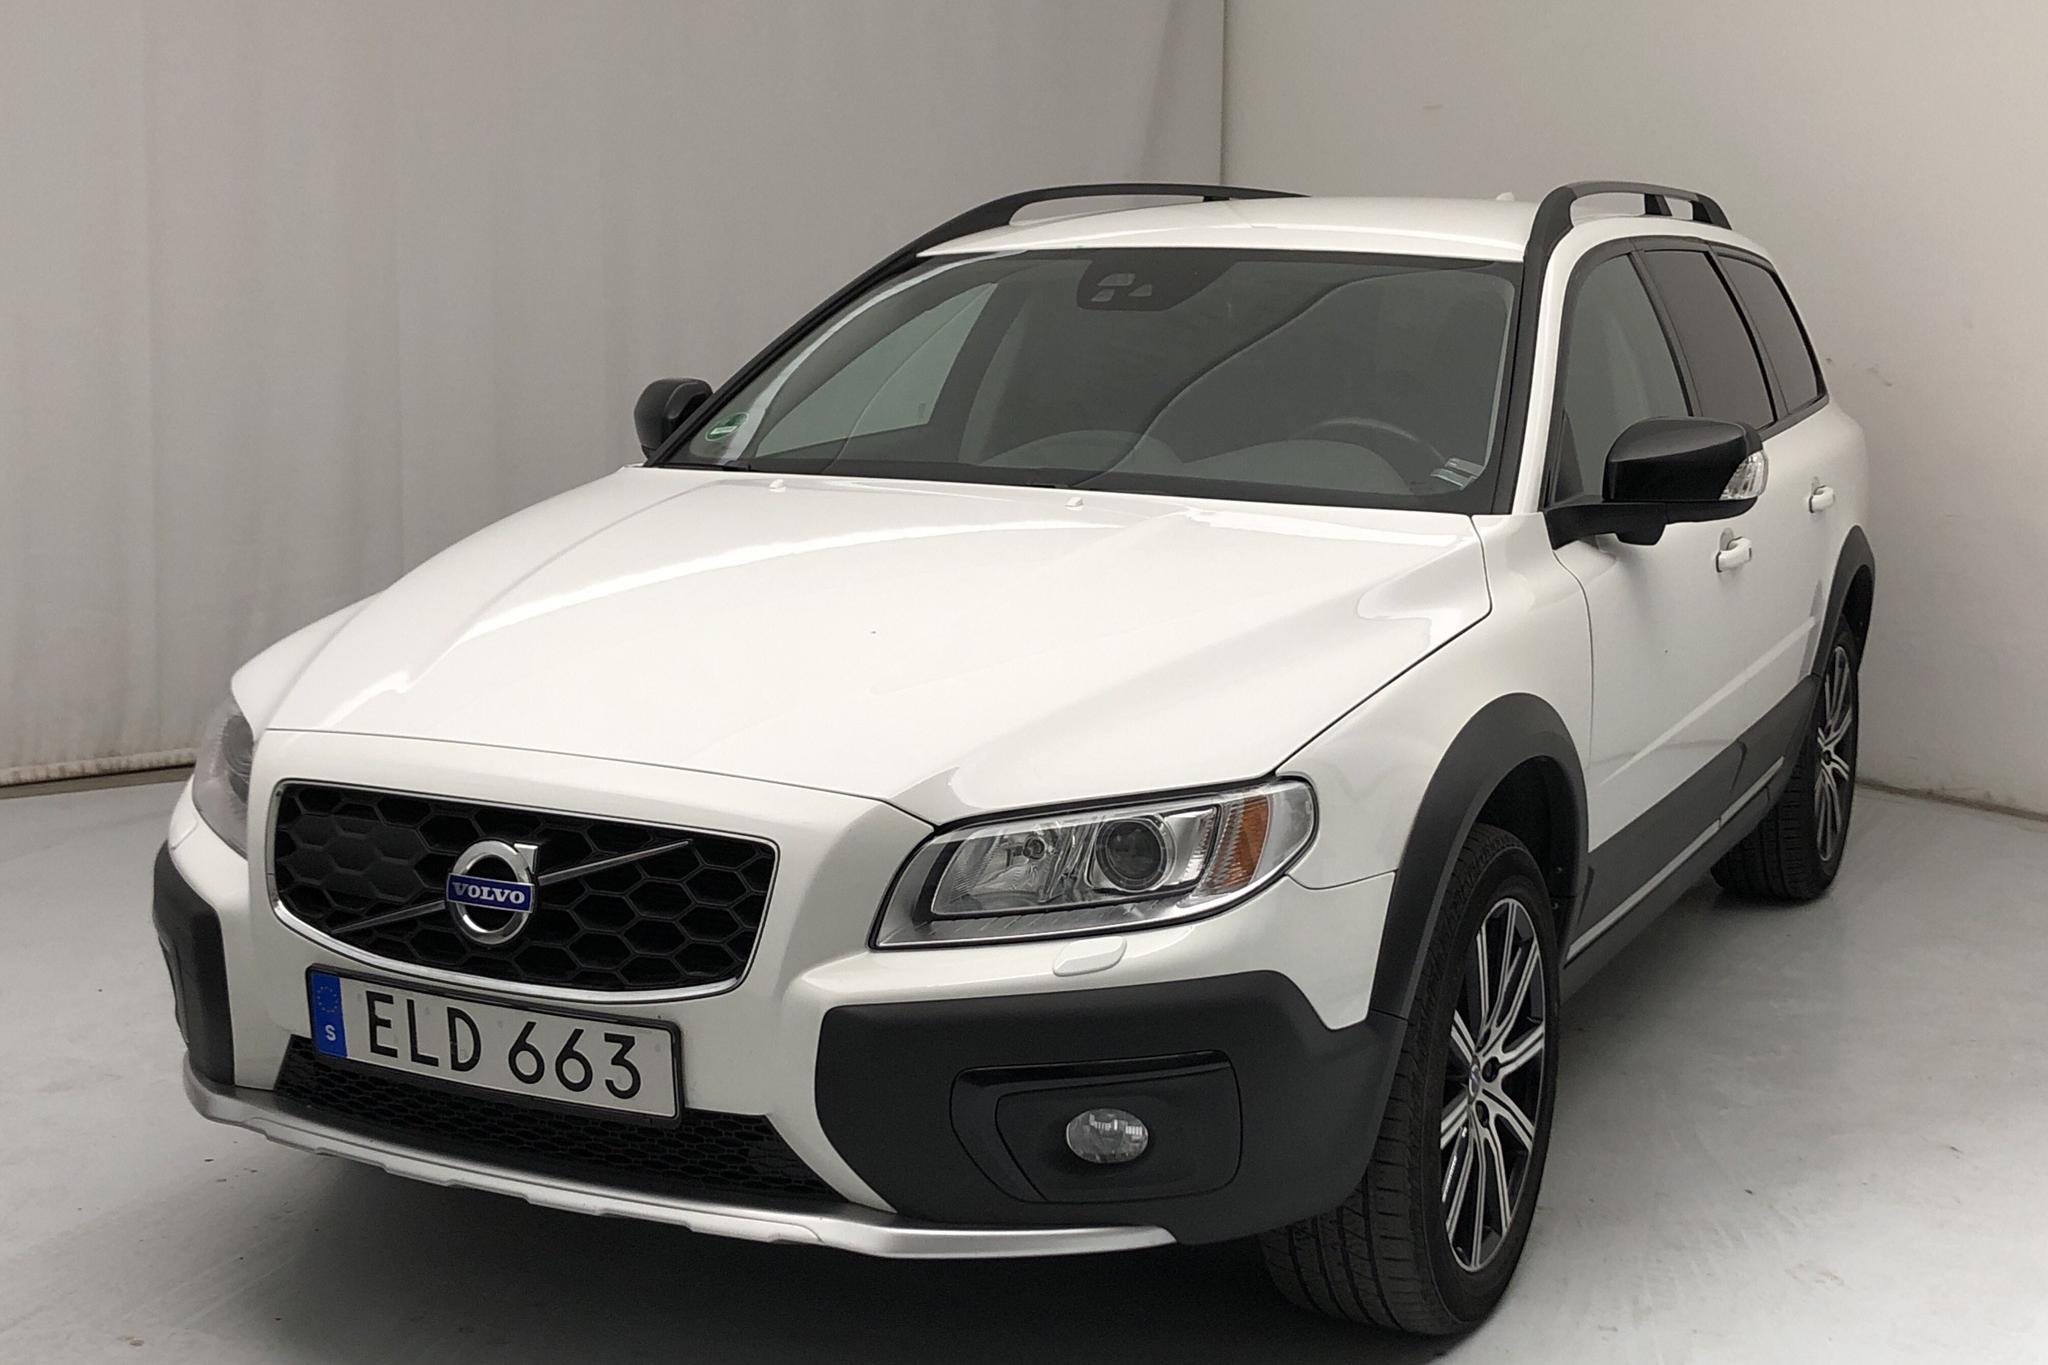 Volvo XC70 II D4 AWD (181hk) - 130 260 km - Manual - white - 2016